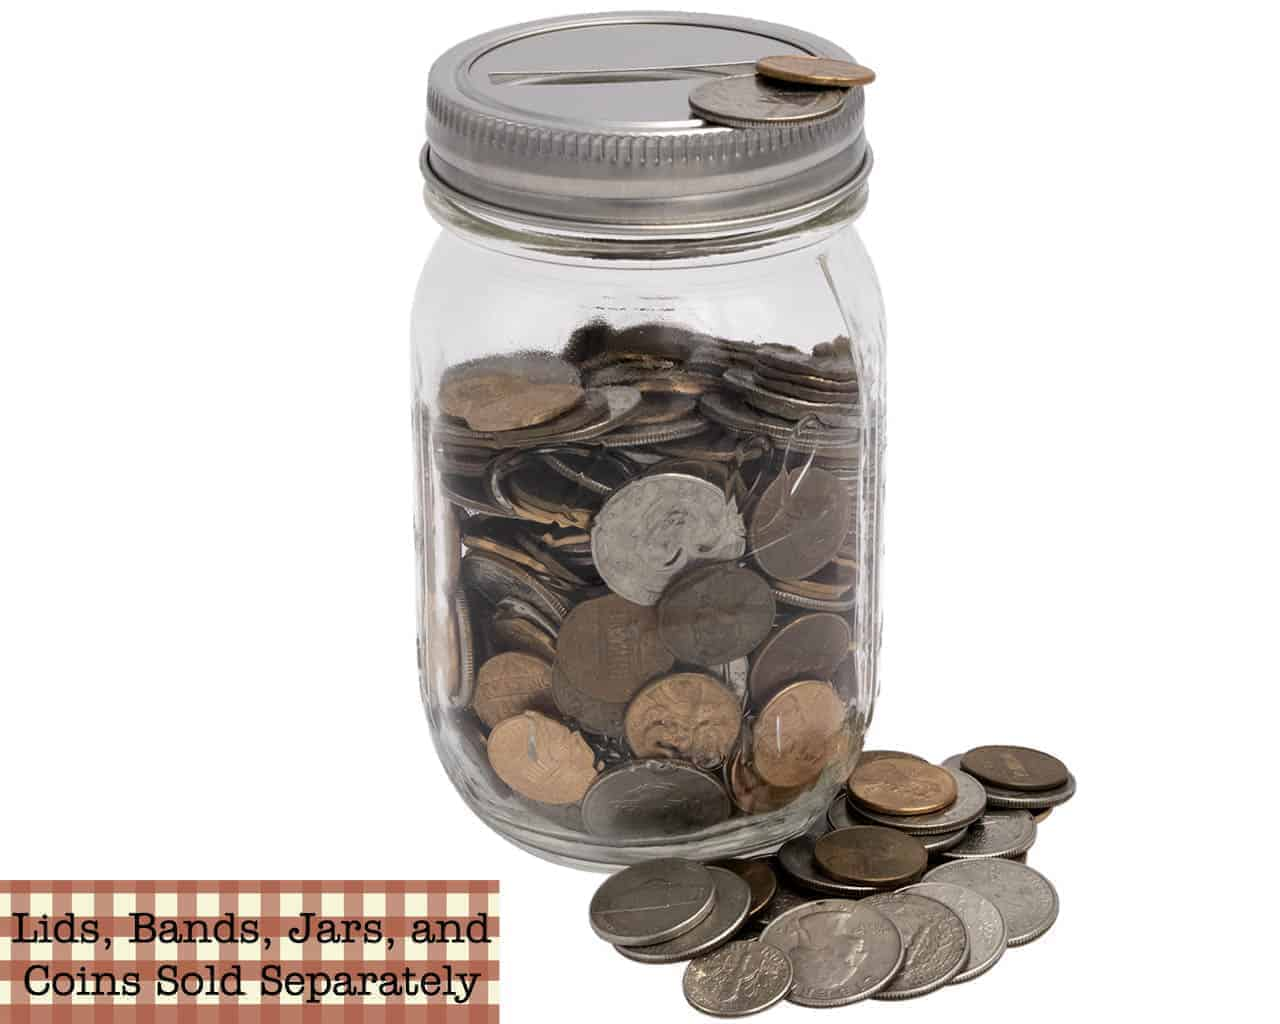 mason-jar-lifestyle-stainless-steel-coin-slot-bank-lid-insert-stainless-steel-band-regular-mouth-ball-mason-jar-coins